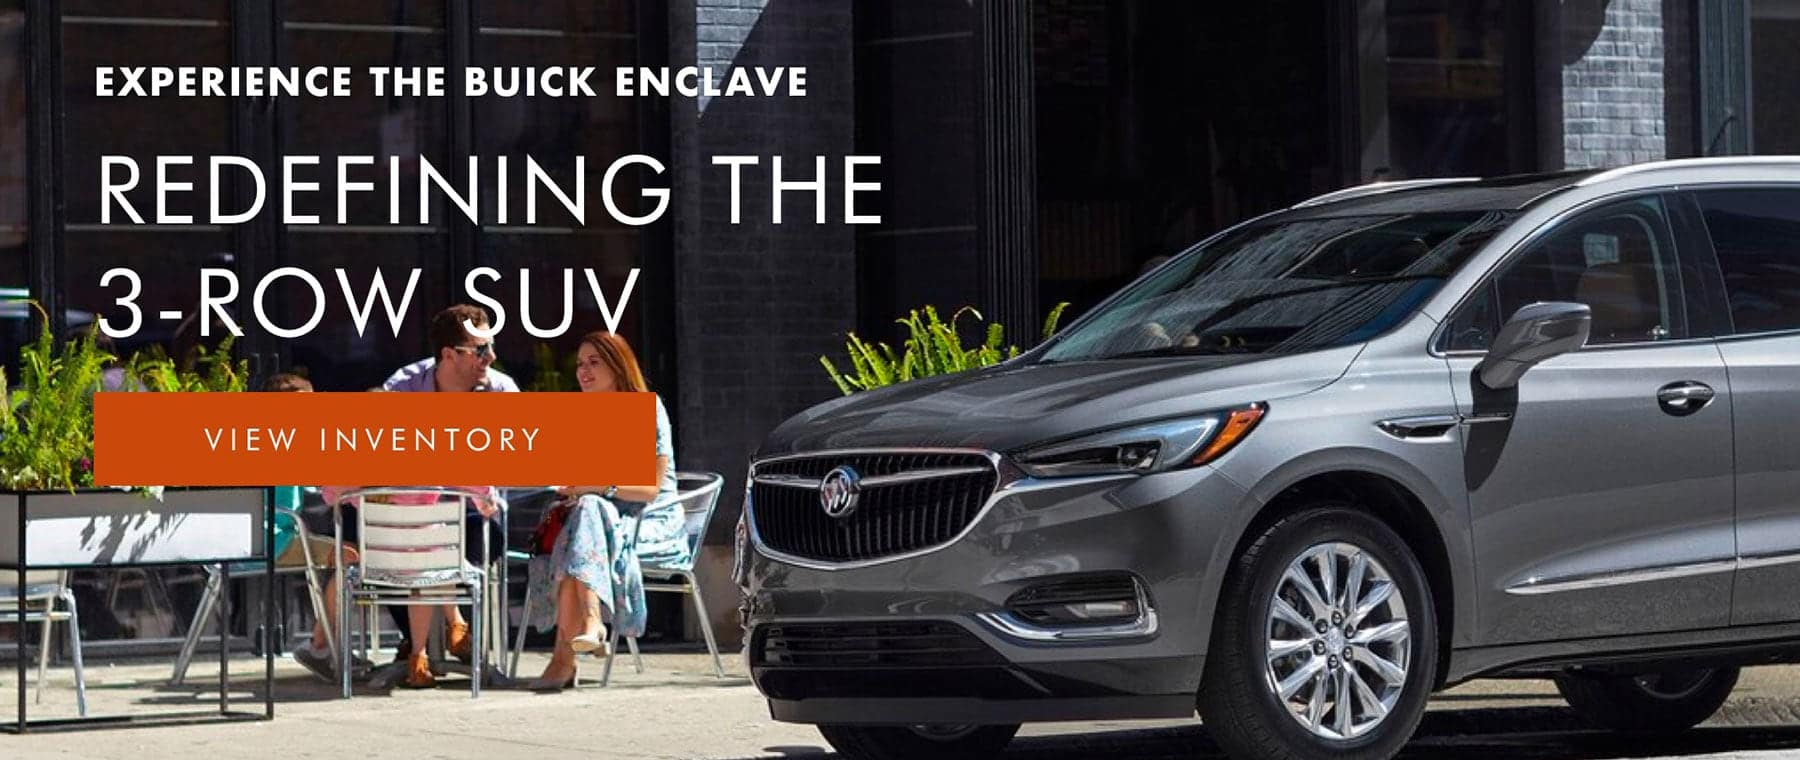 Buick Enclave banner